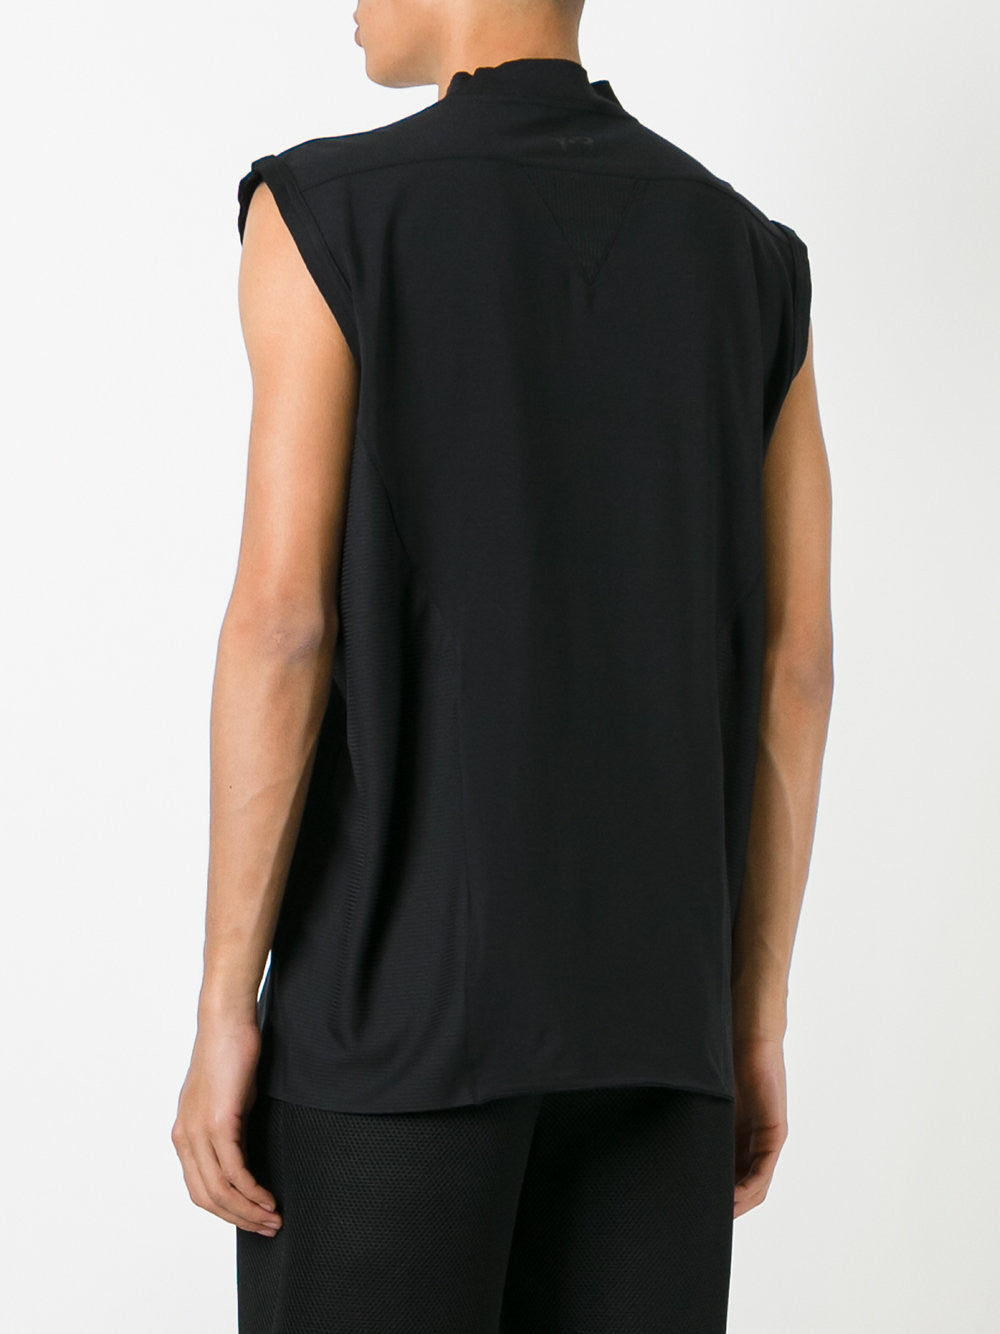 Sleeveless Nomad Tee | BS3474MNOMAD